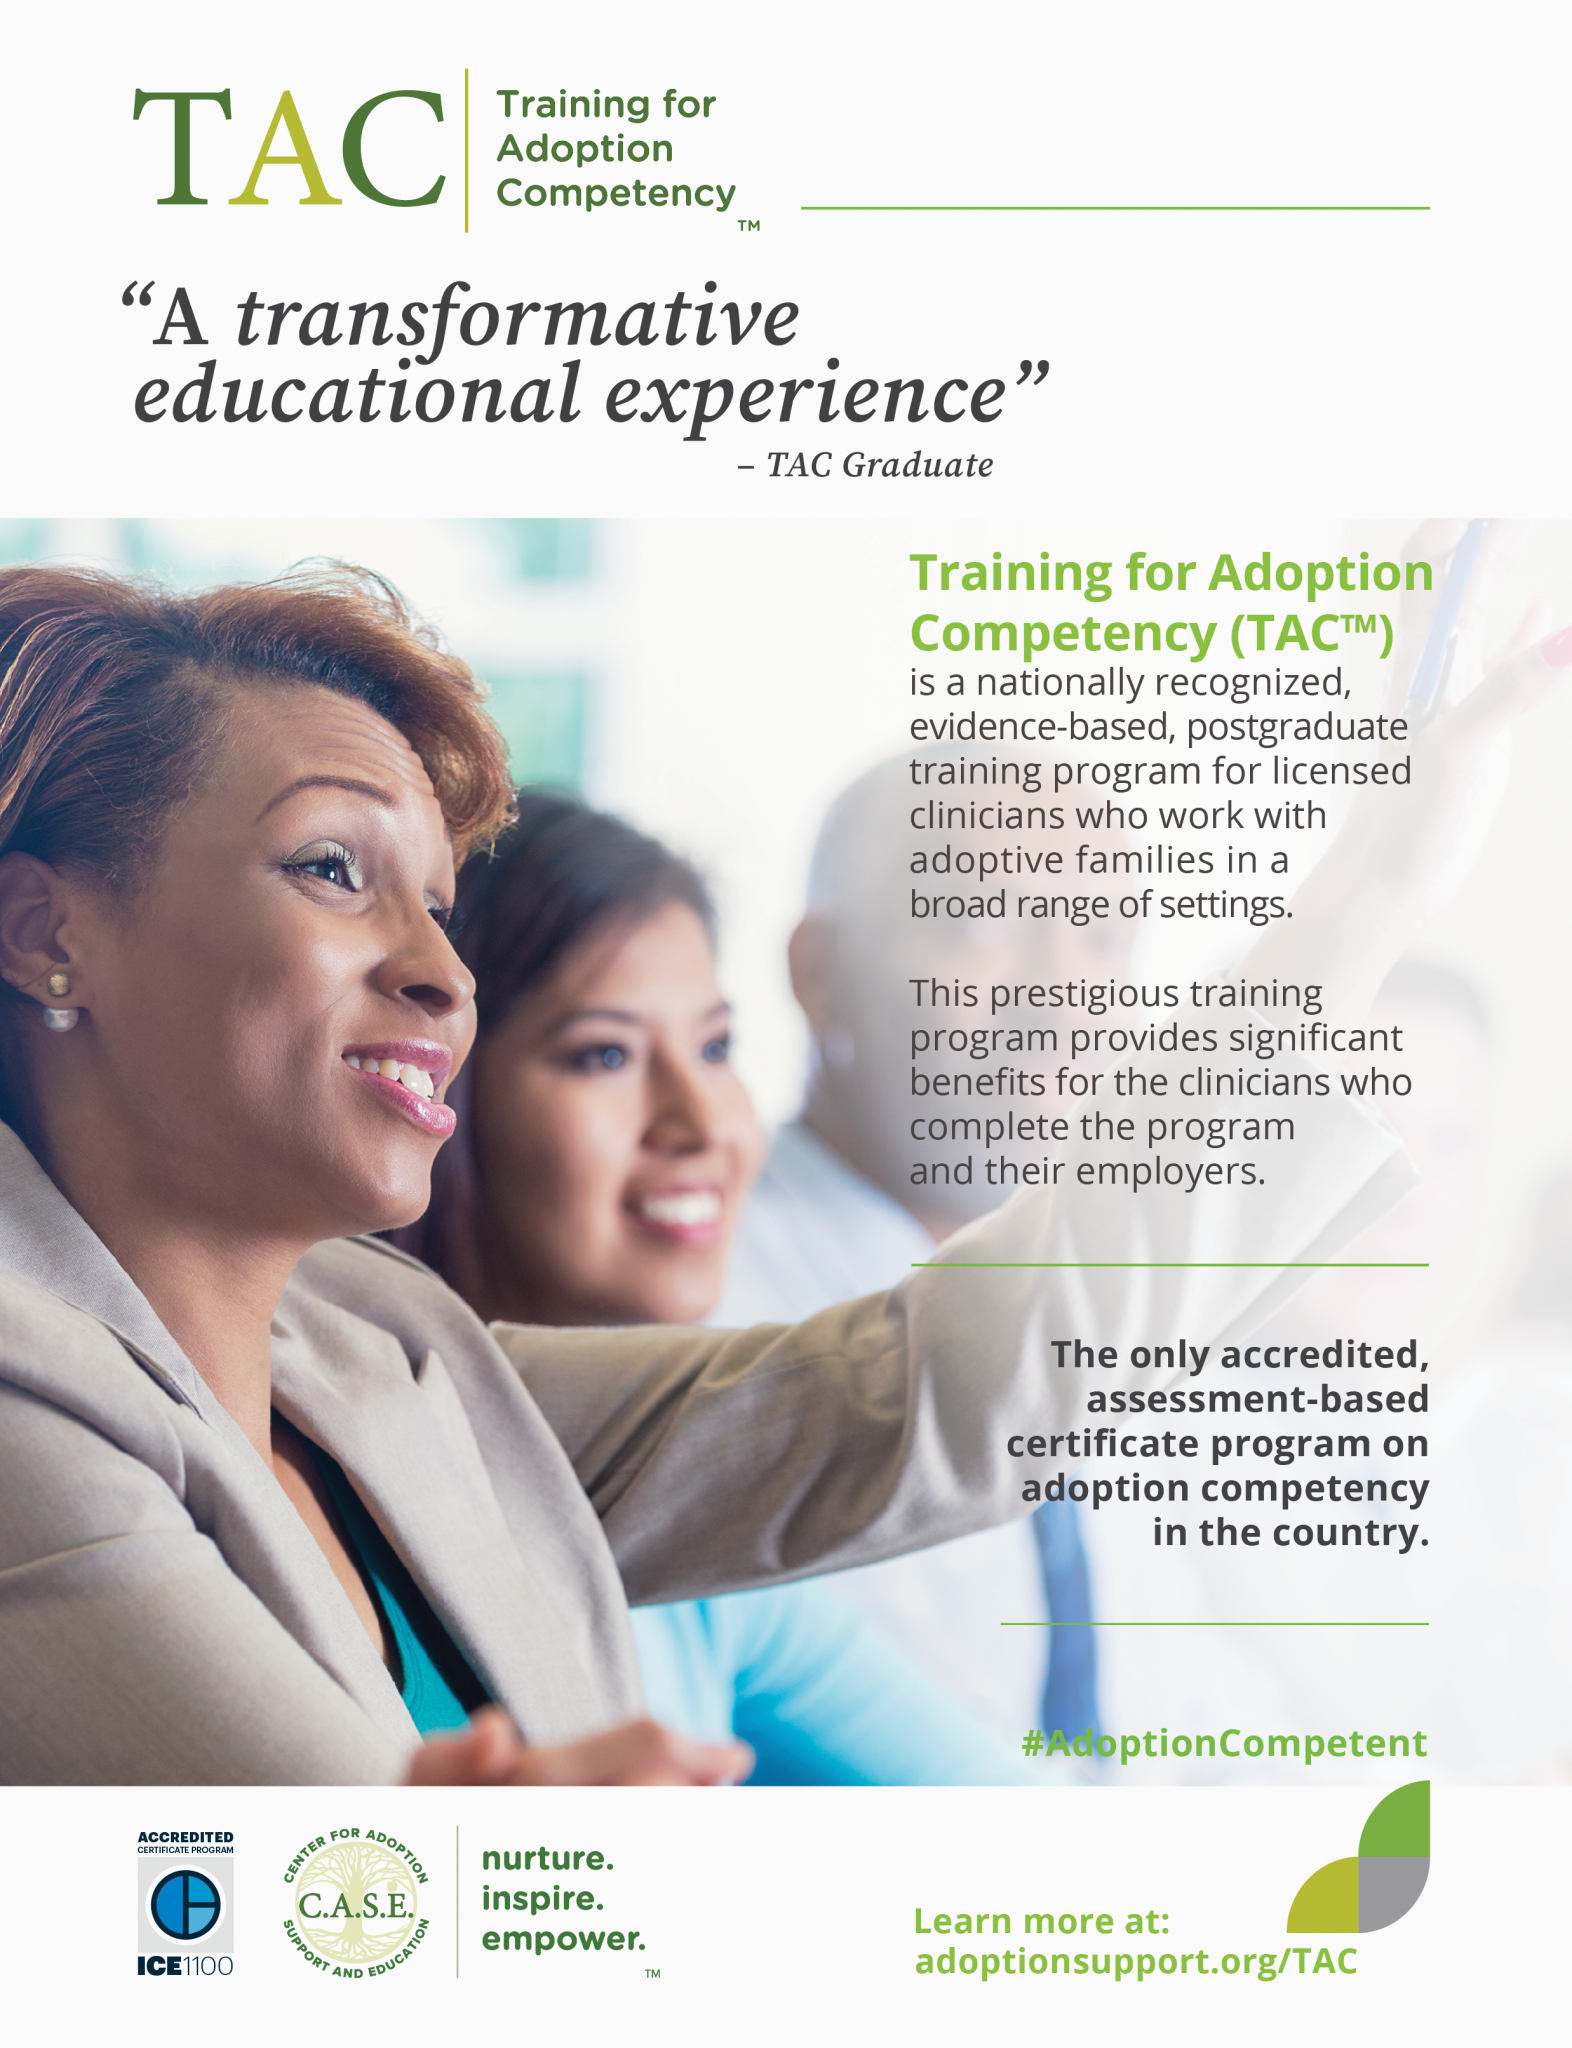 Training for Adoption Competency